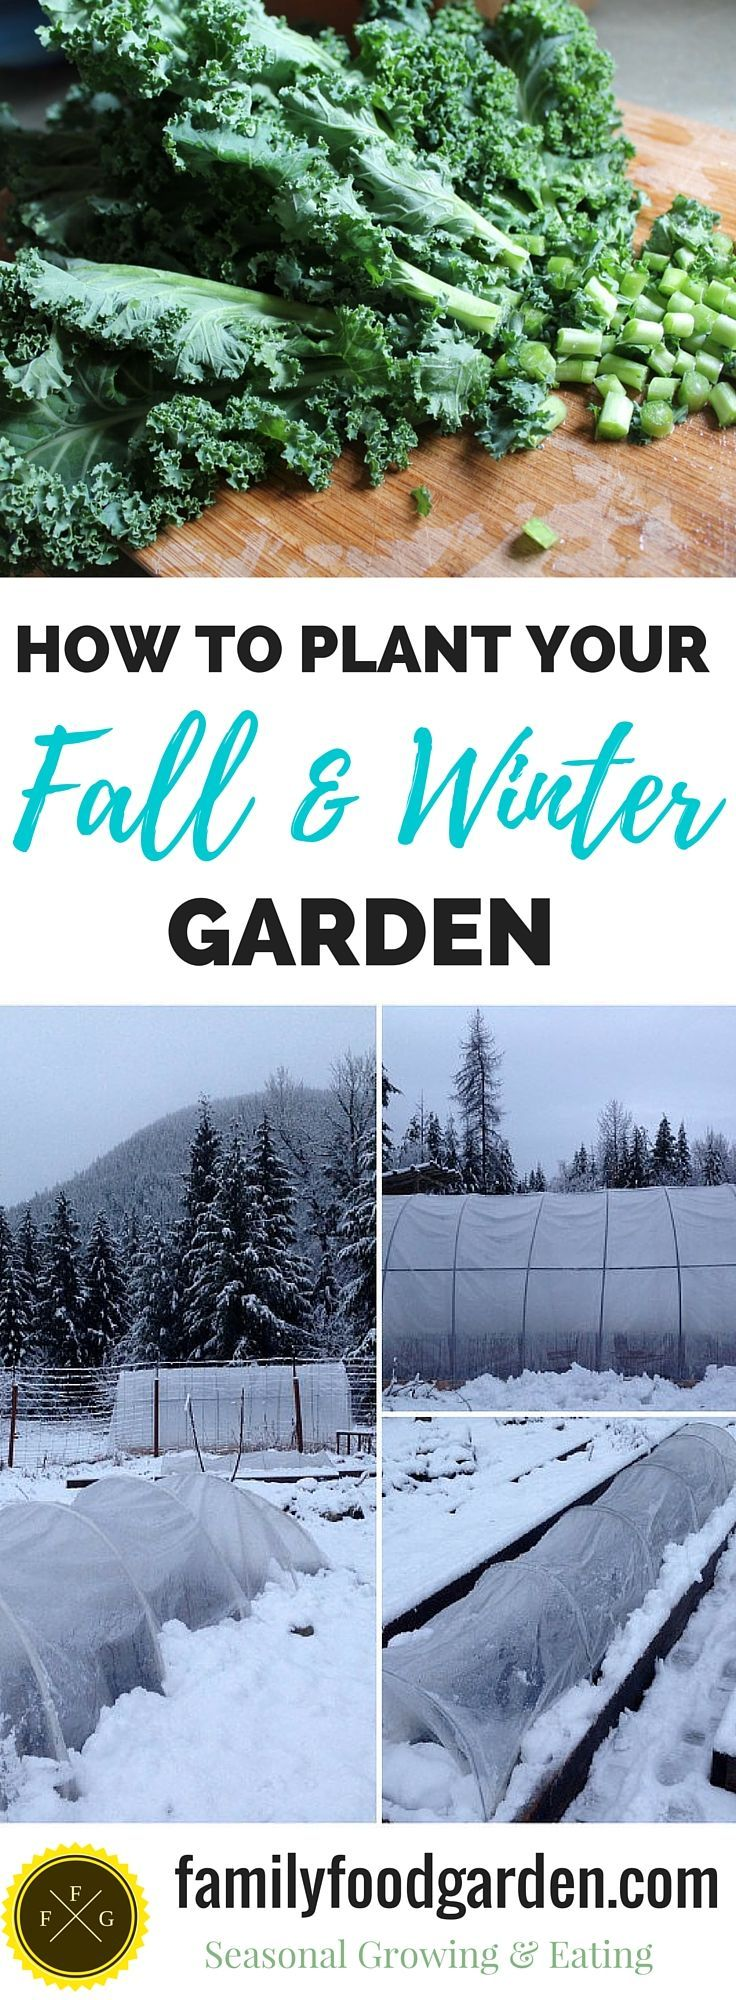 Tips for Growing a Late Summer to Mid Fall Garden